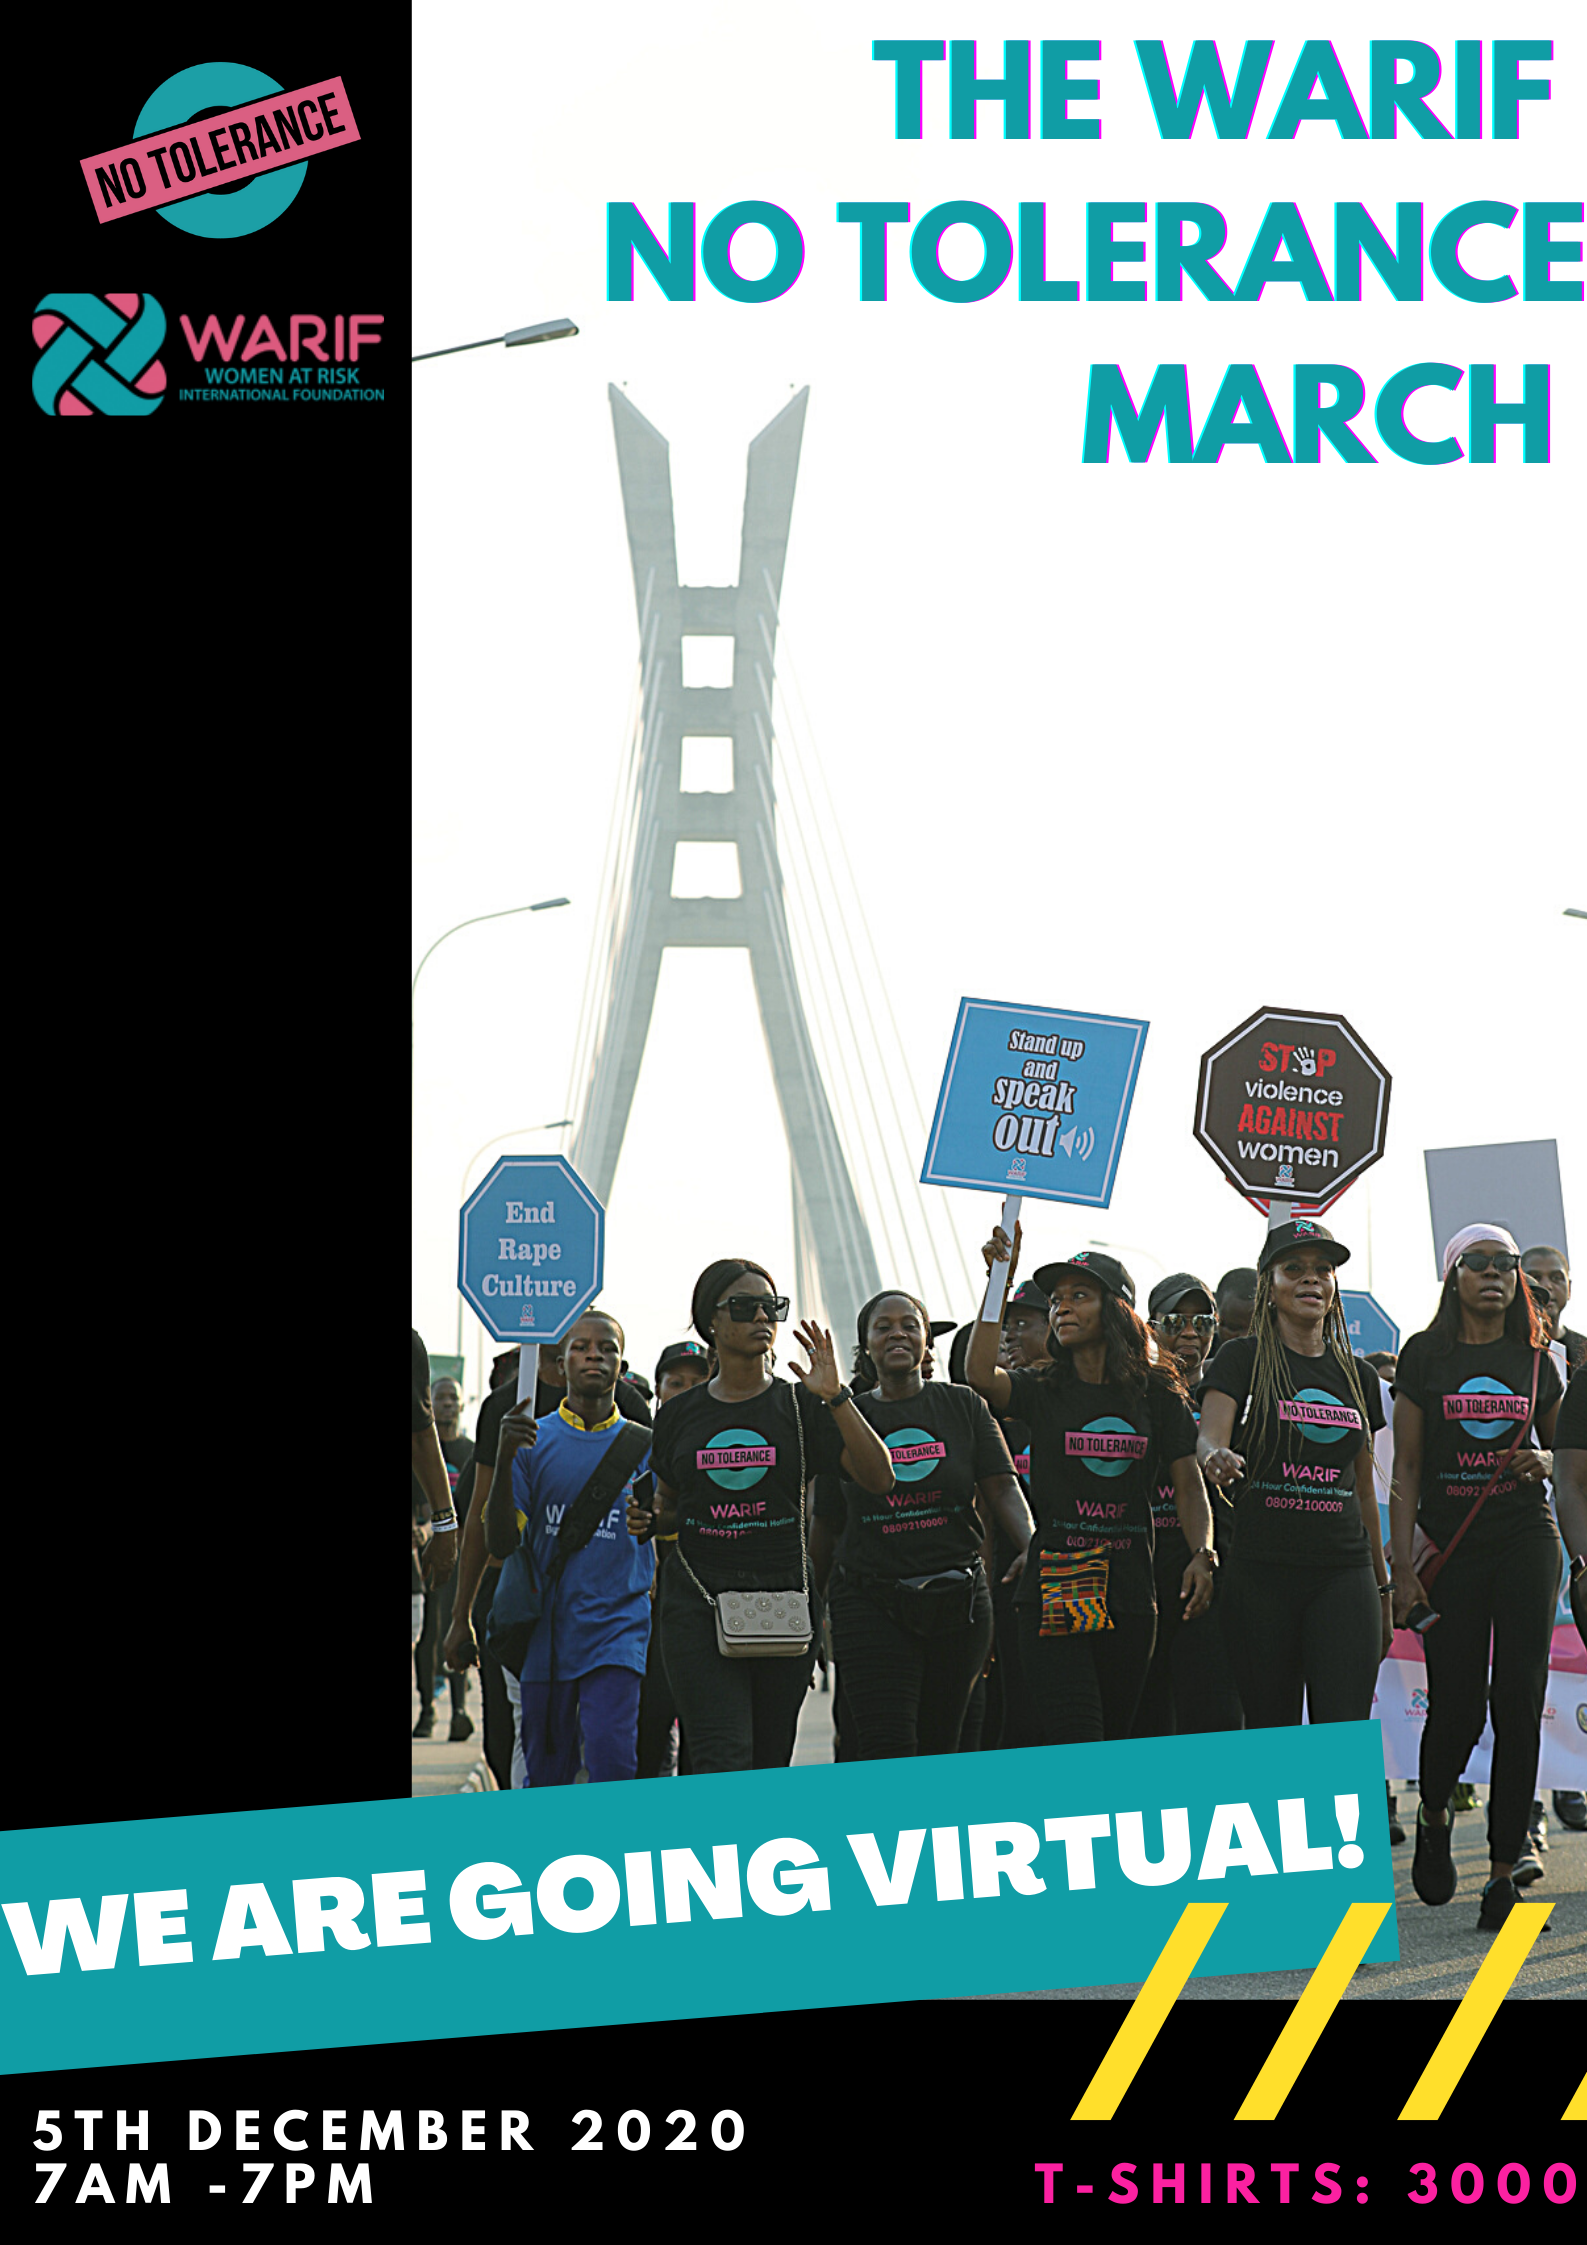 WARIF raises awareness for rape, sexual violence with 2nd edition of 'No Tolerance March'